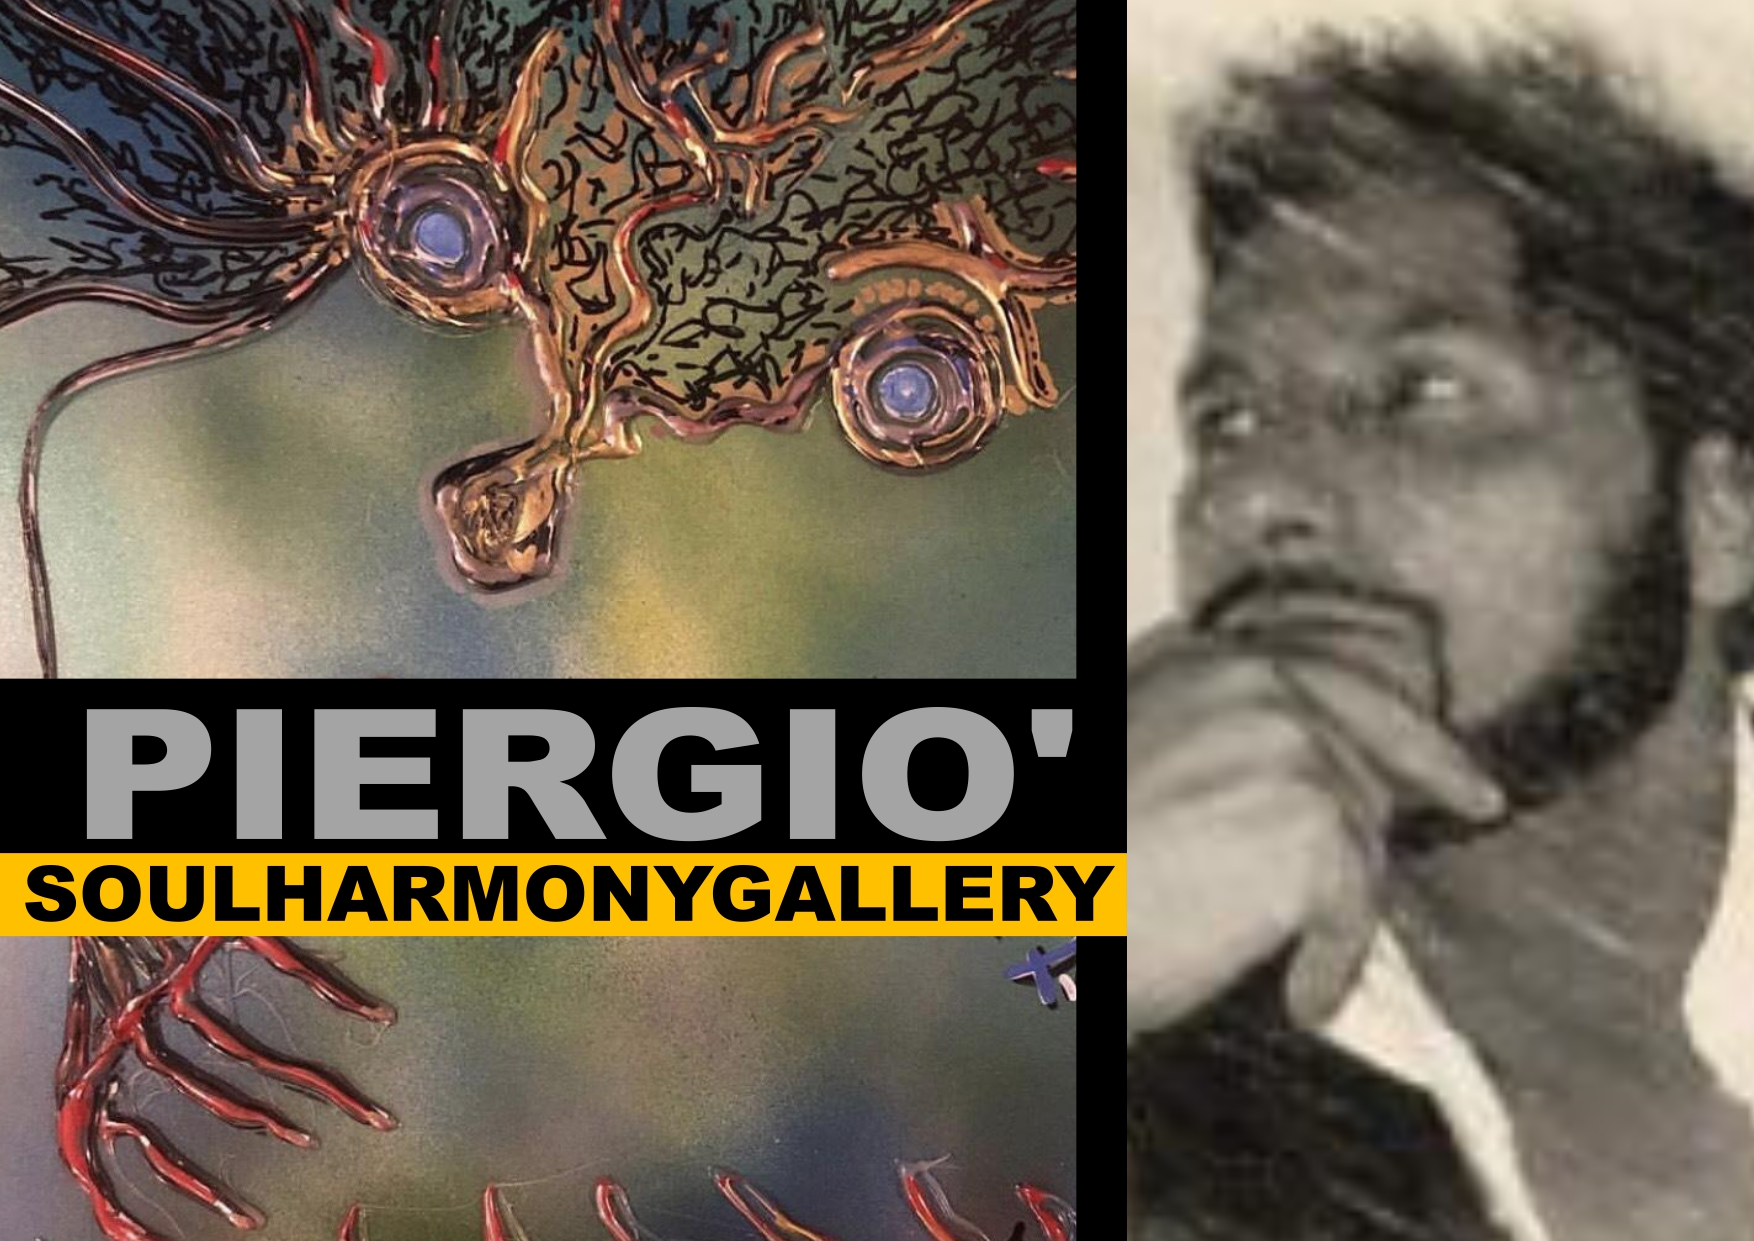 PierGiò in Soulharmony Gallery